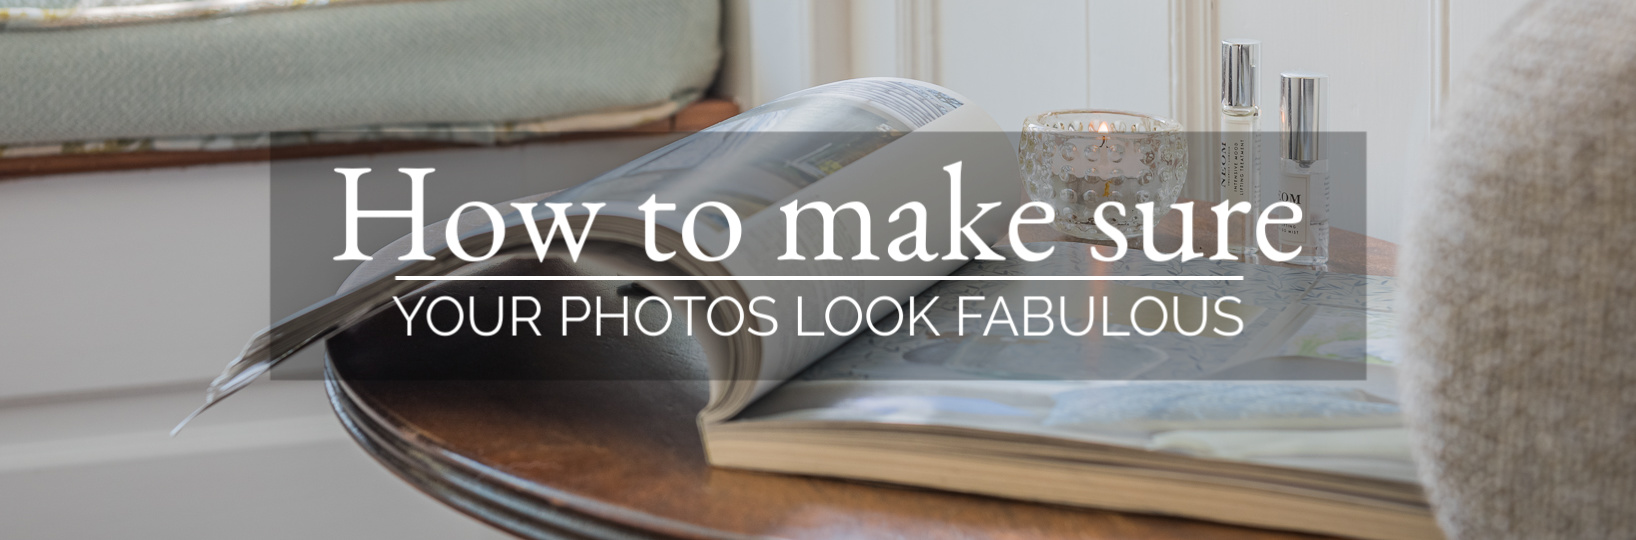 facebook-cover-art-how-to-make-sure-your-photos-look-fabulous